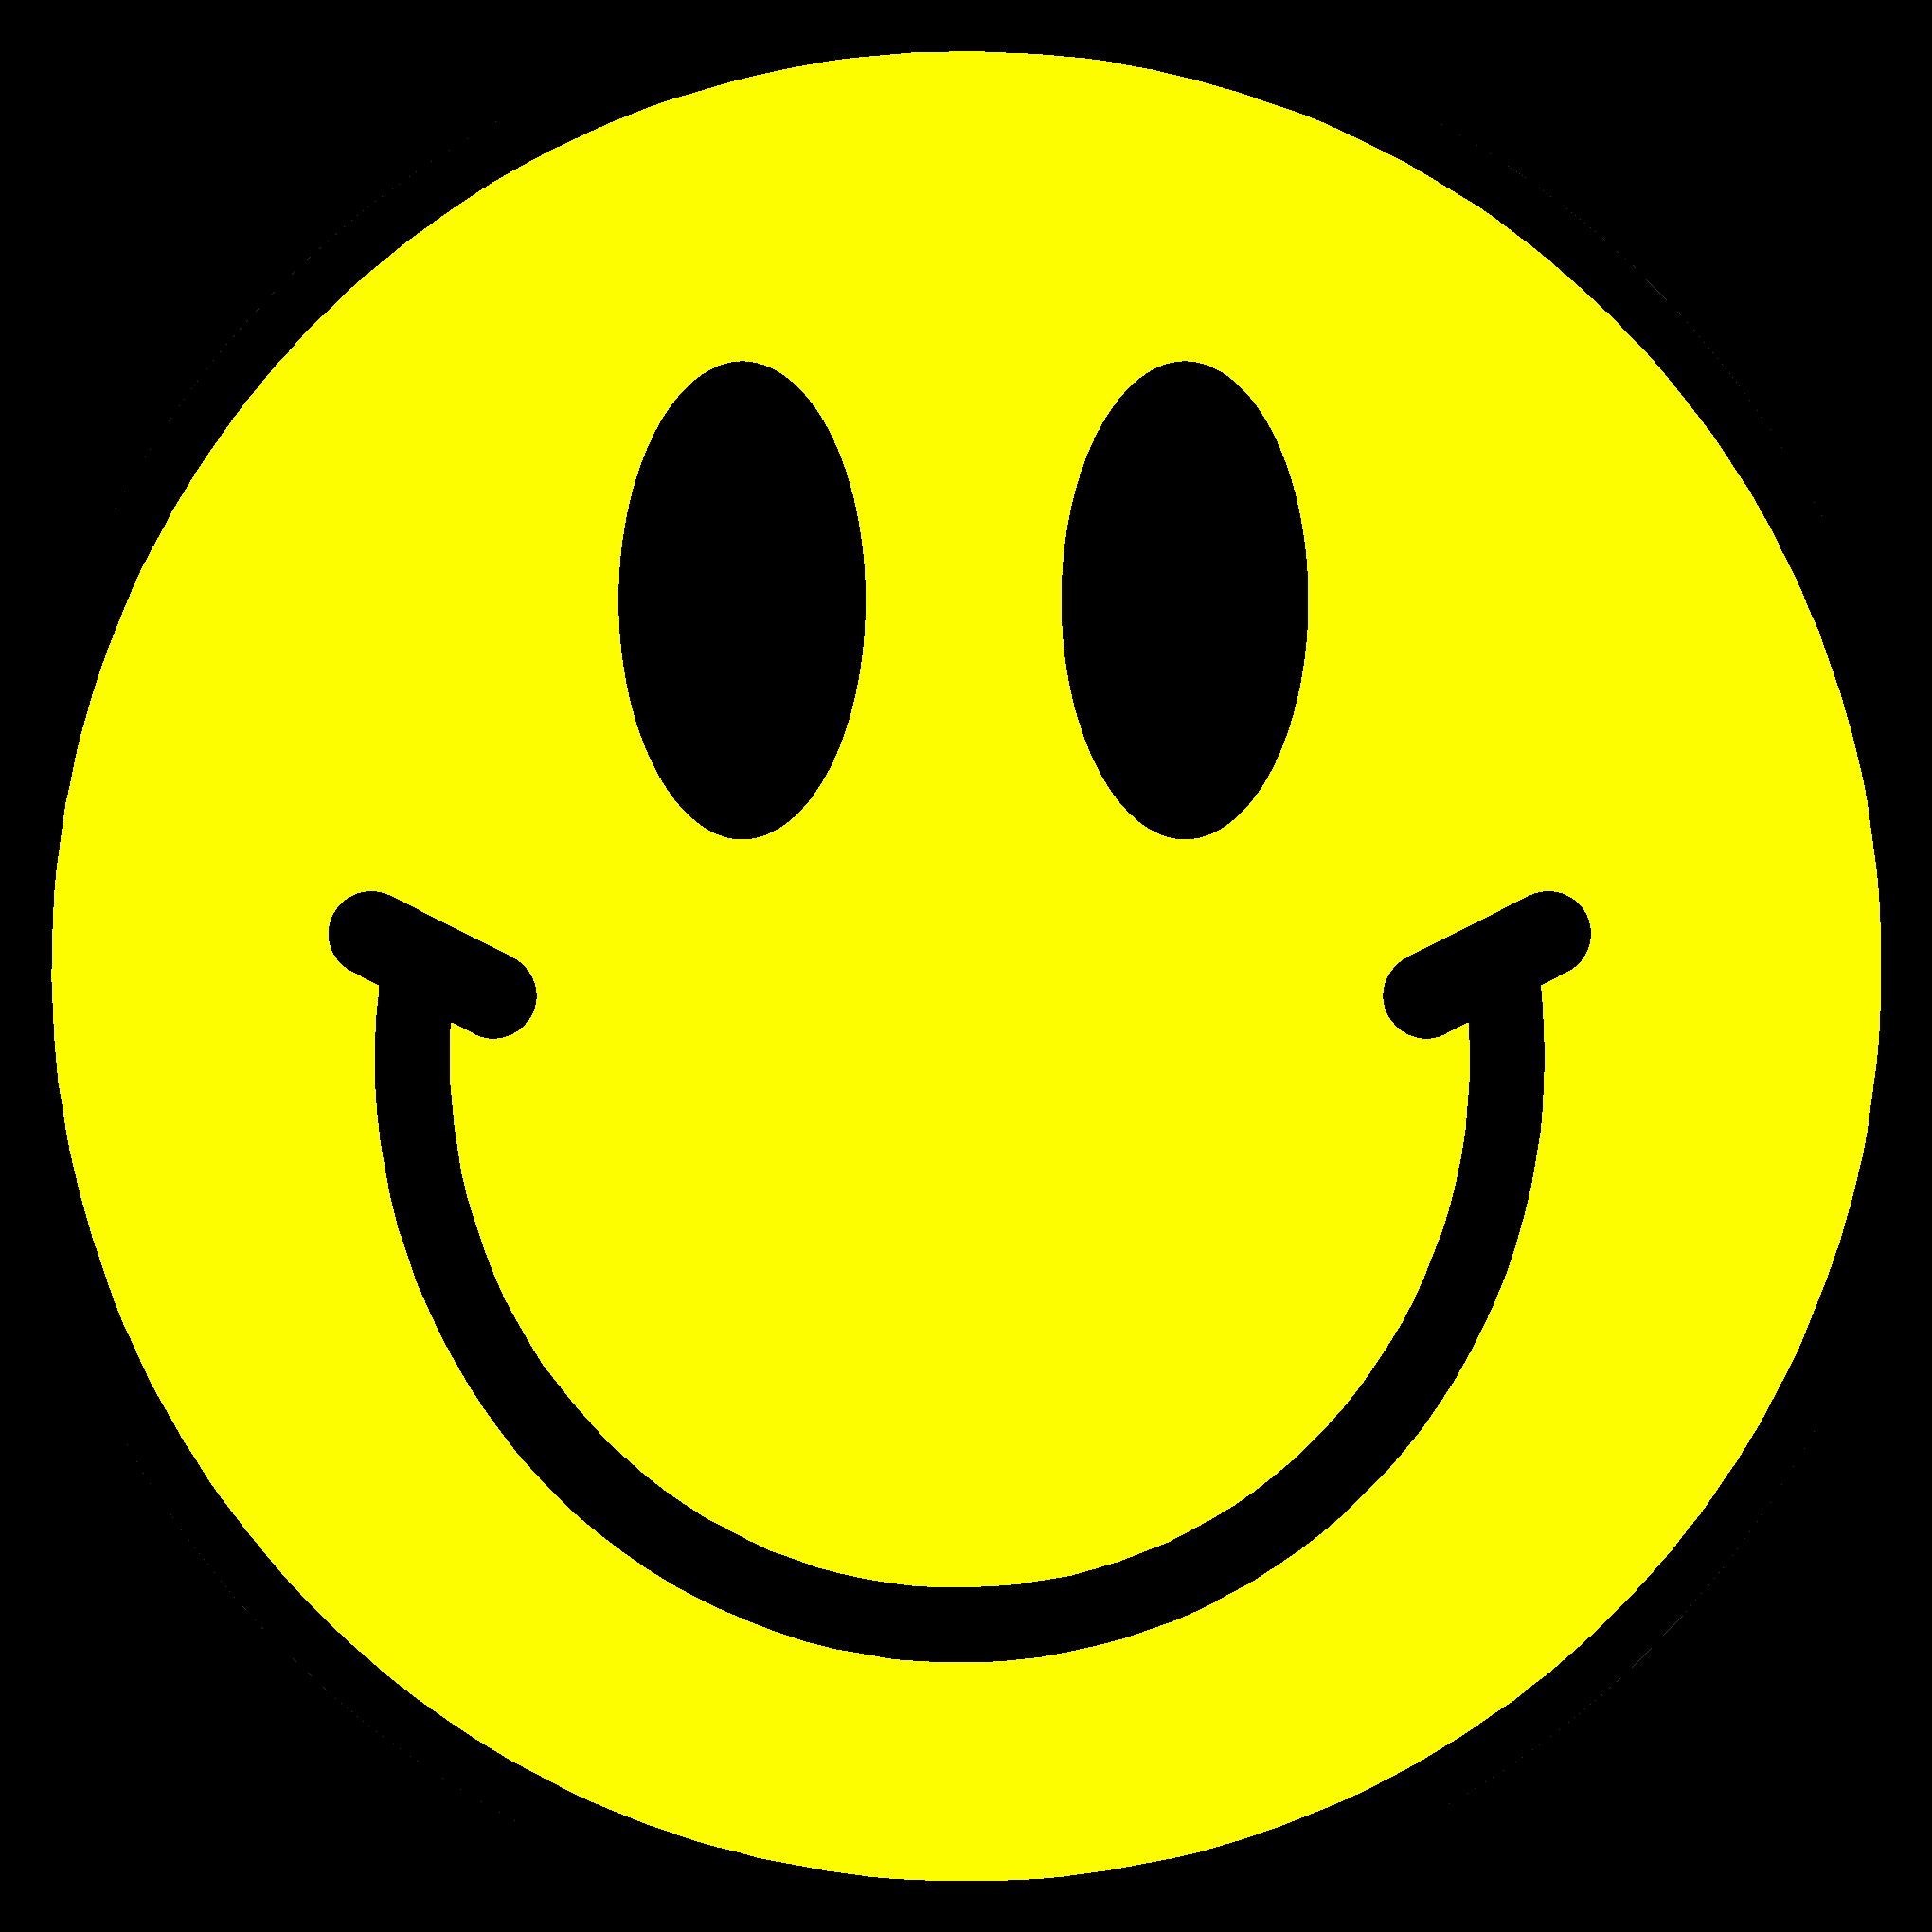 Happy and Sad Emoji New Smiley Face Sad Face Cliparts